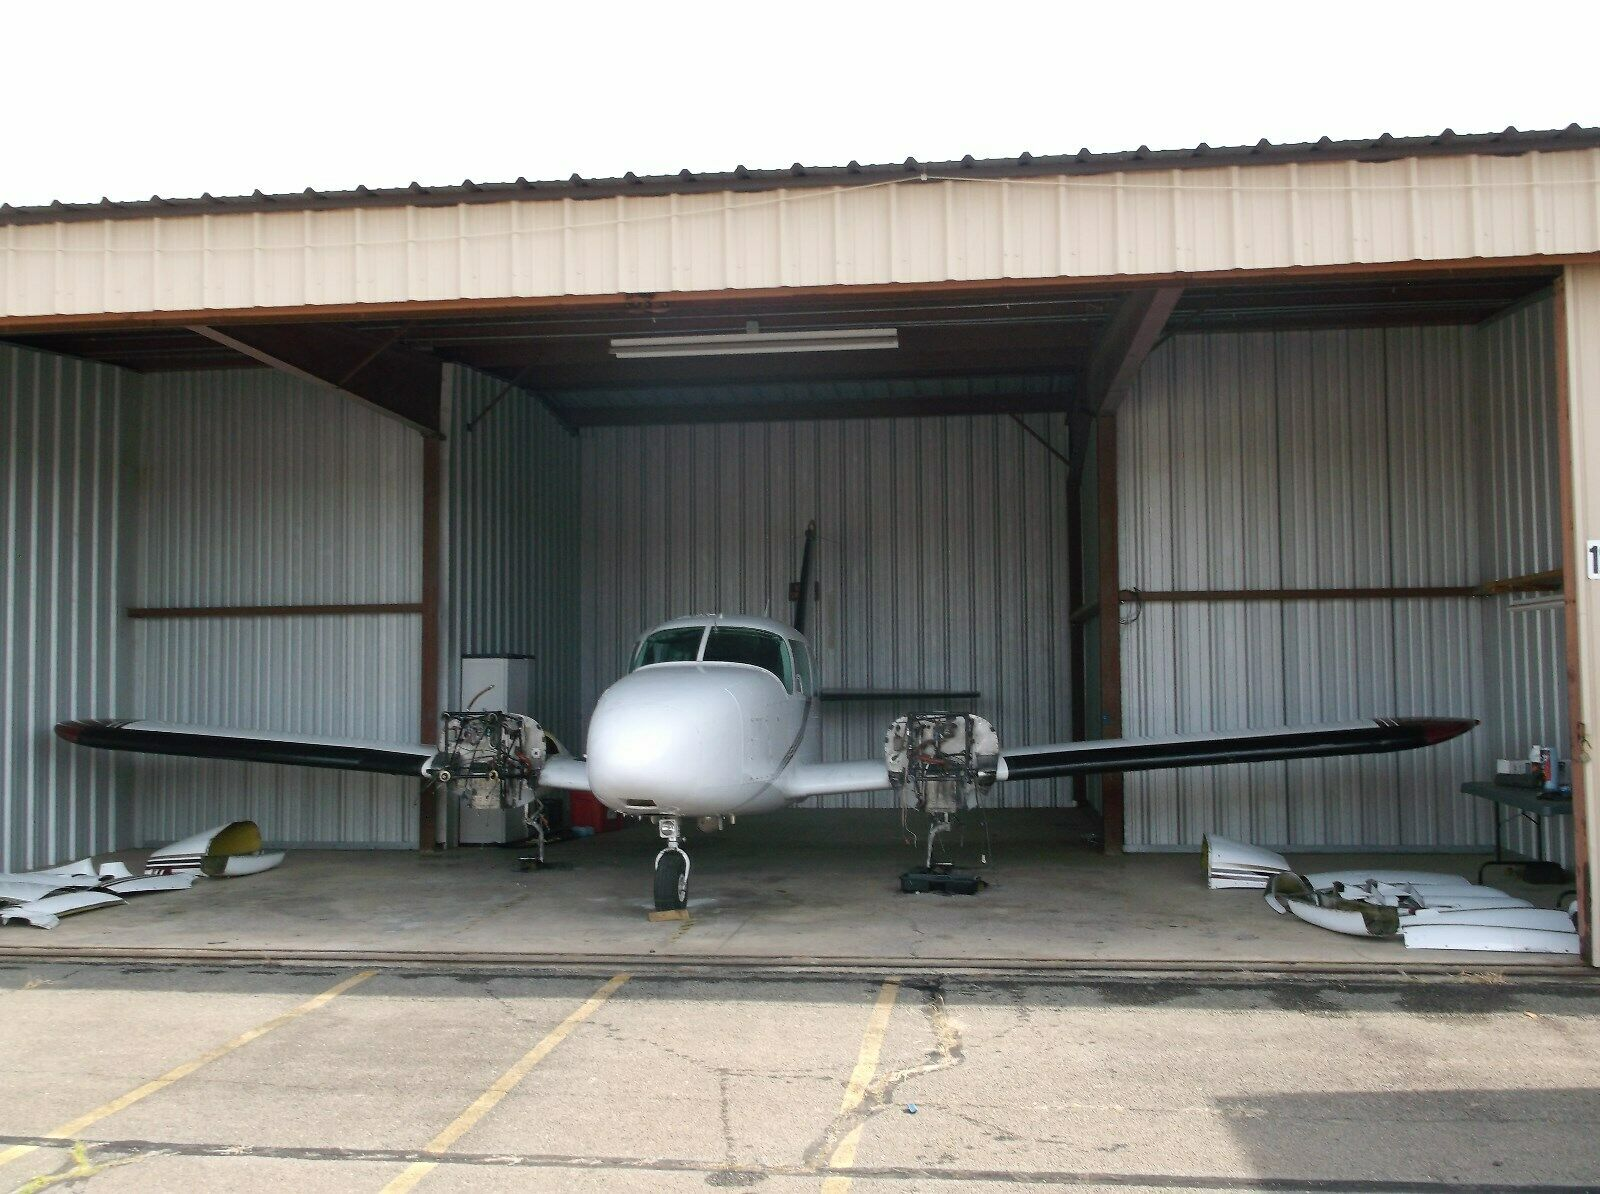 complete undamaged 1967 Piper PA 23 250 Turbo Aztec aircraft for sale